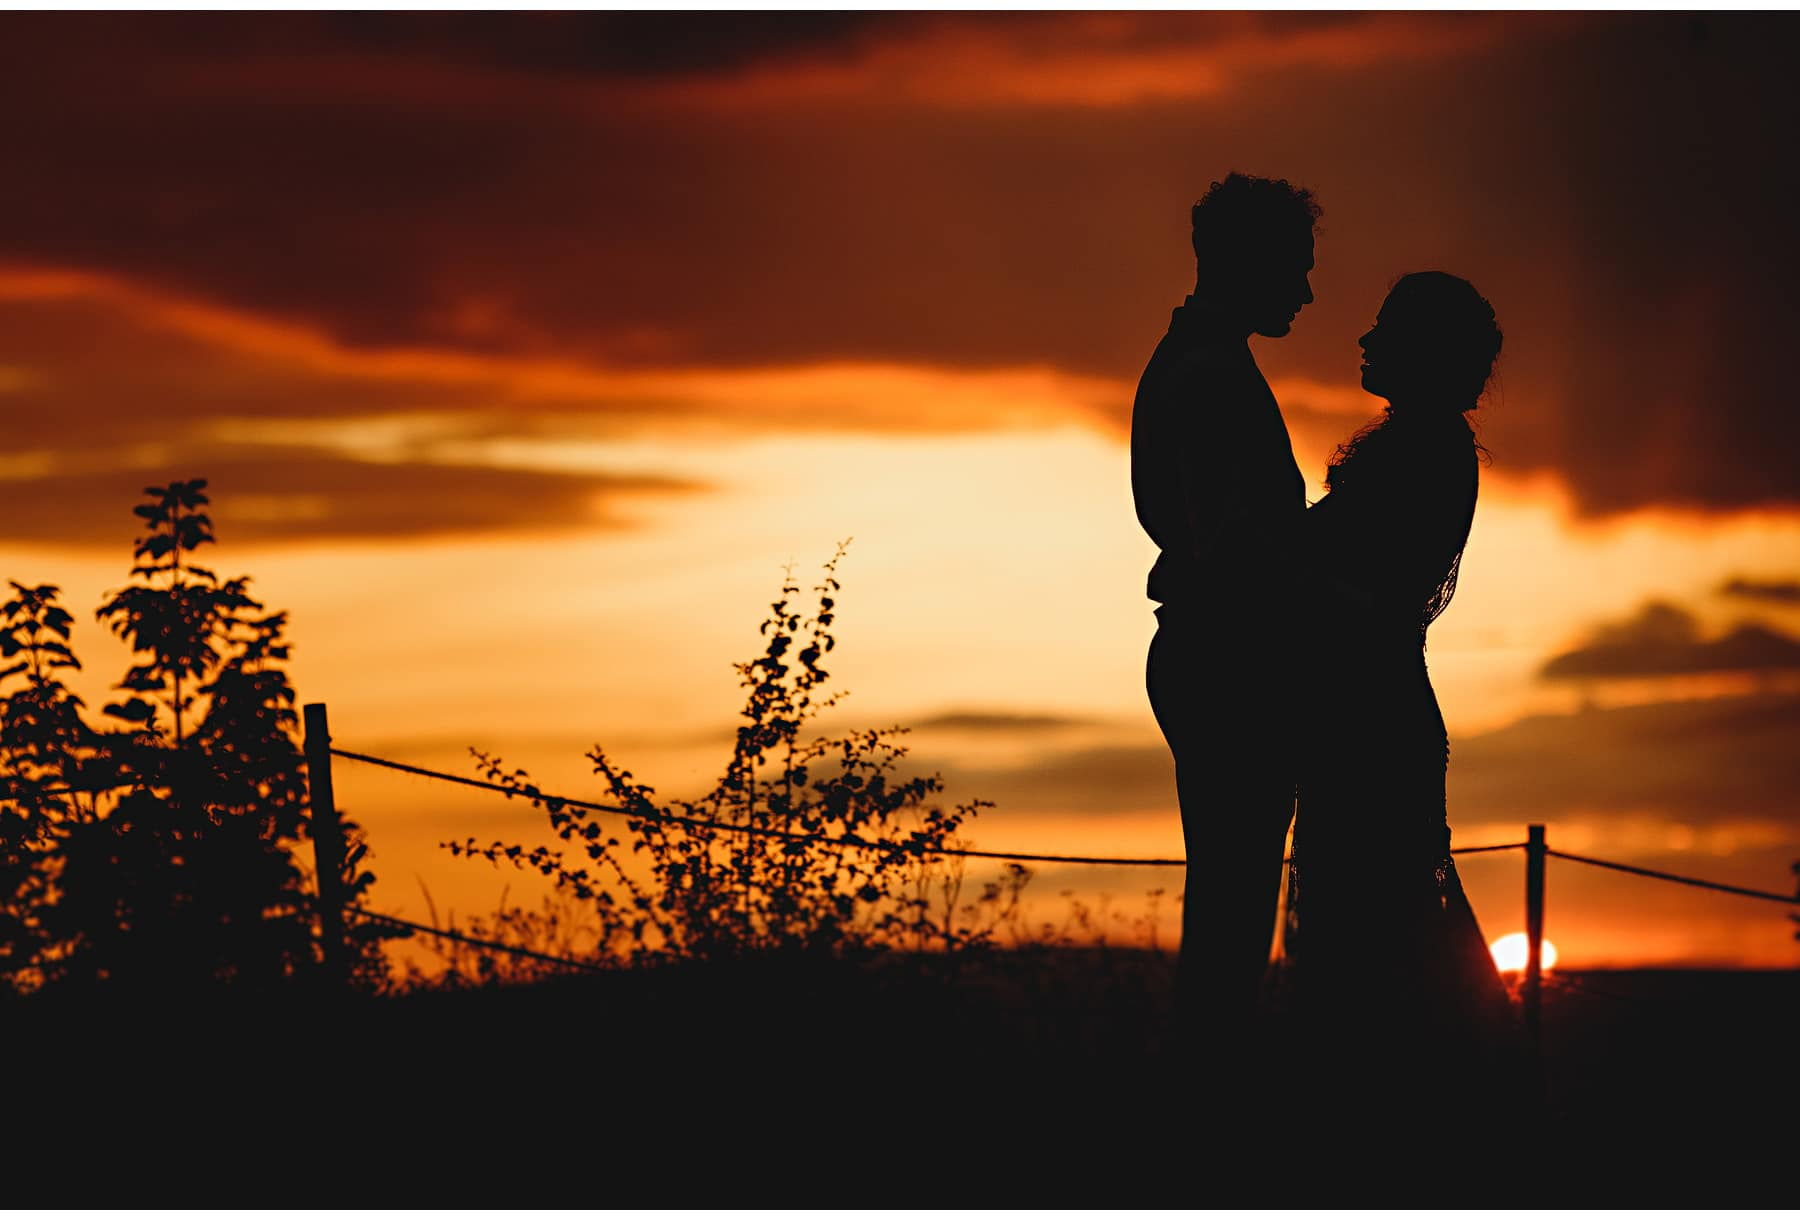 the bride & groom in silhouette at sunset